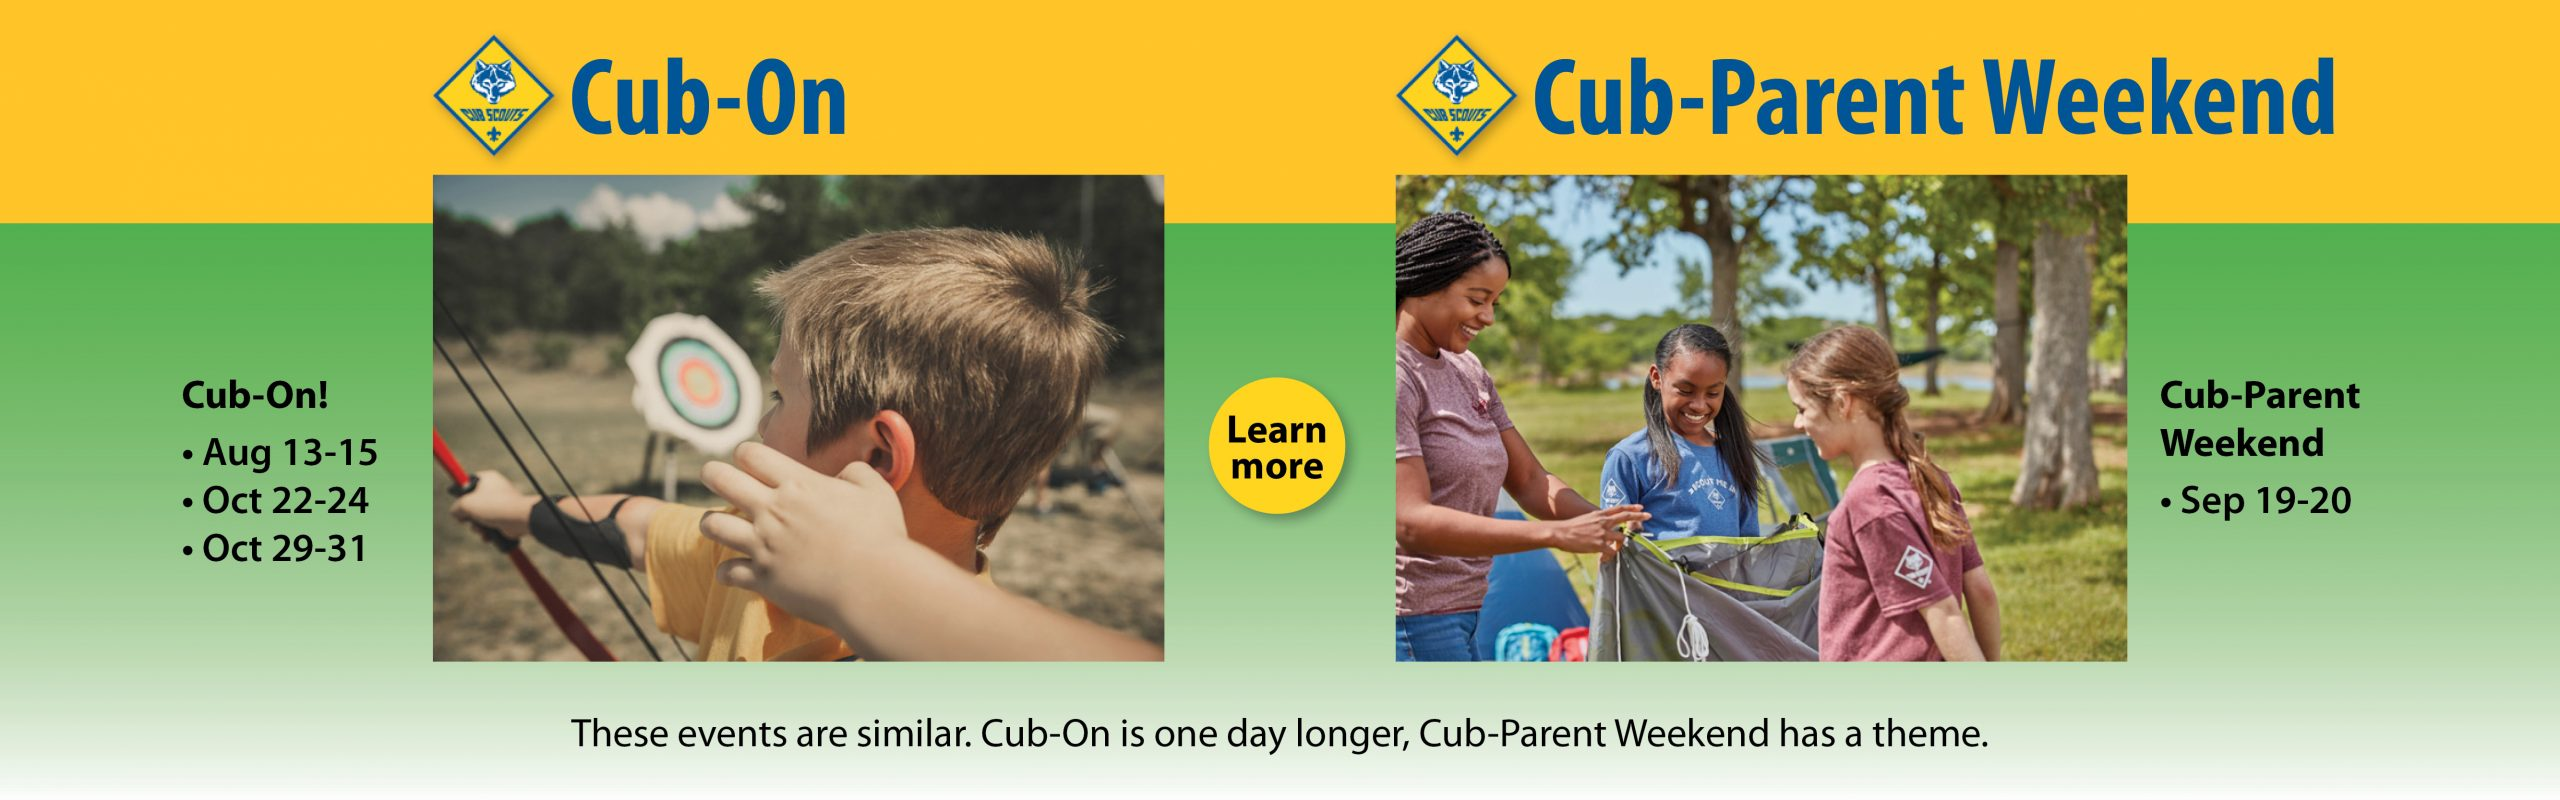 Cub-On, Cub-Parent Weekend banner